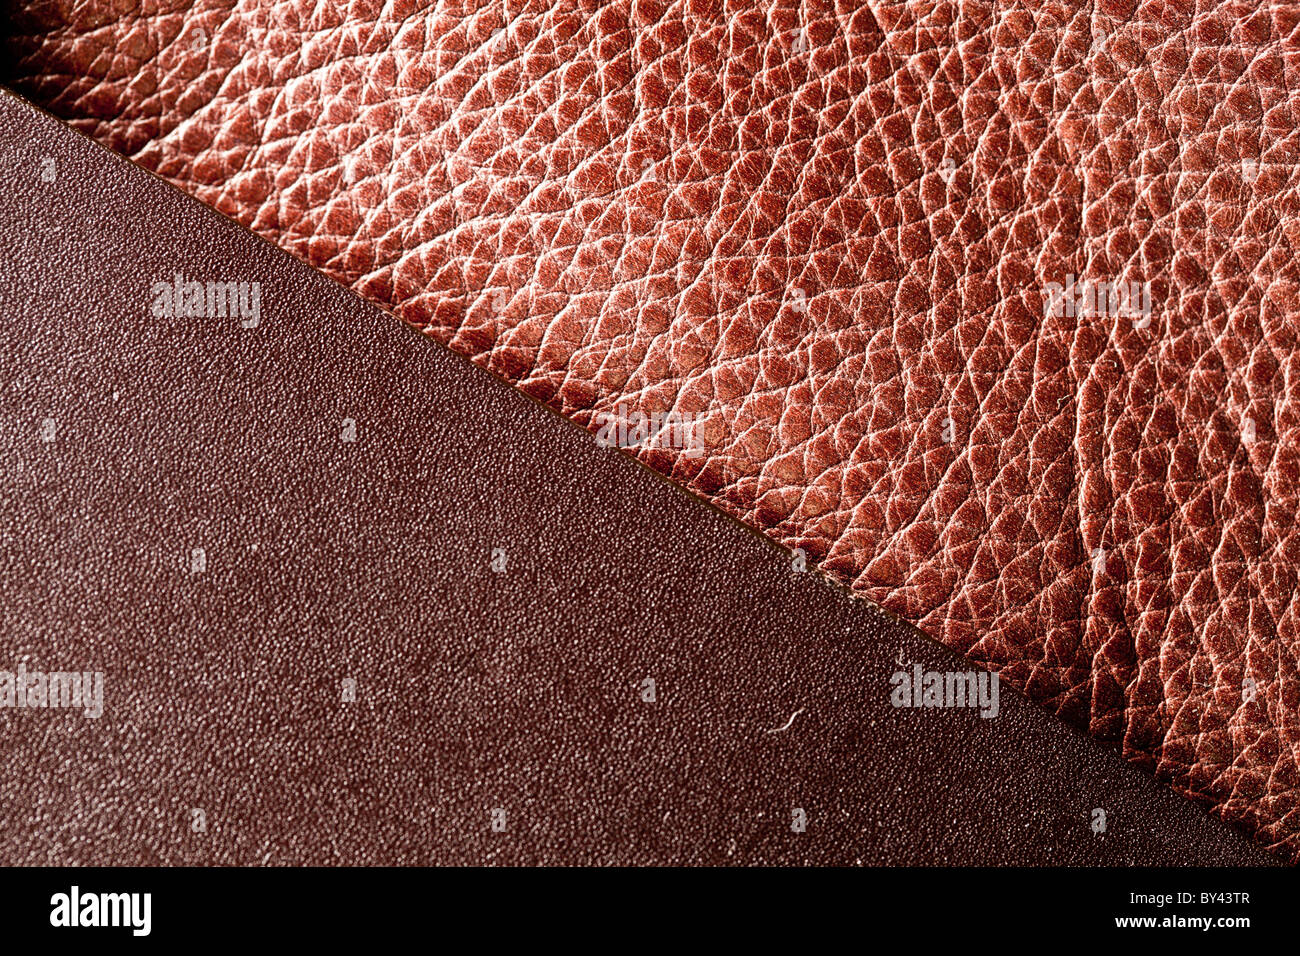 Image texture of brown leather. - Stock Image